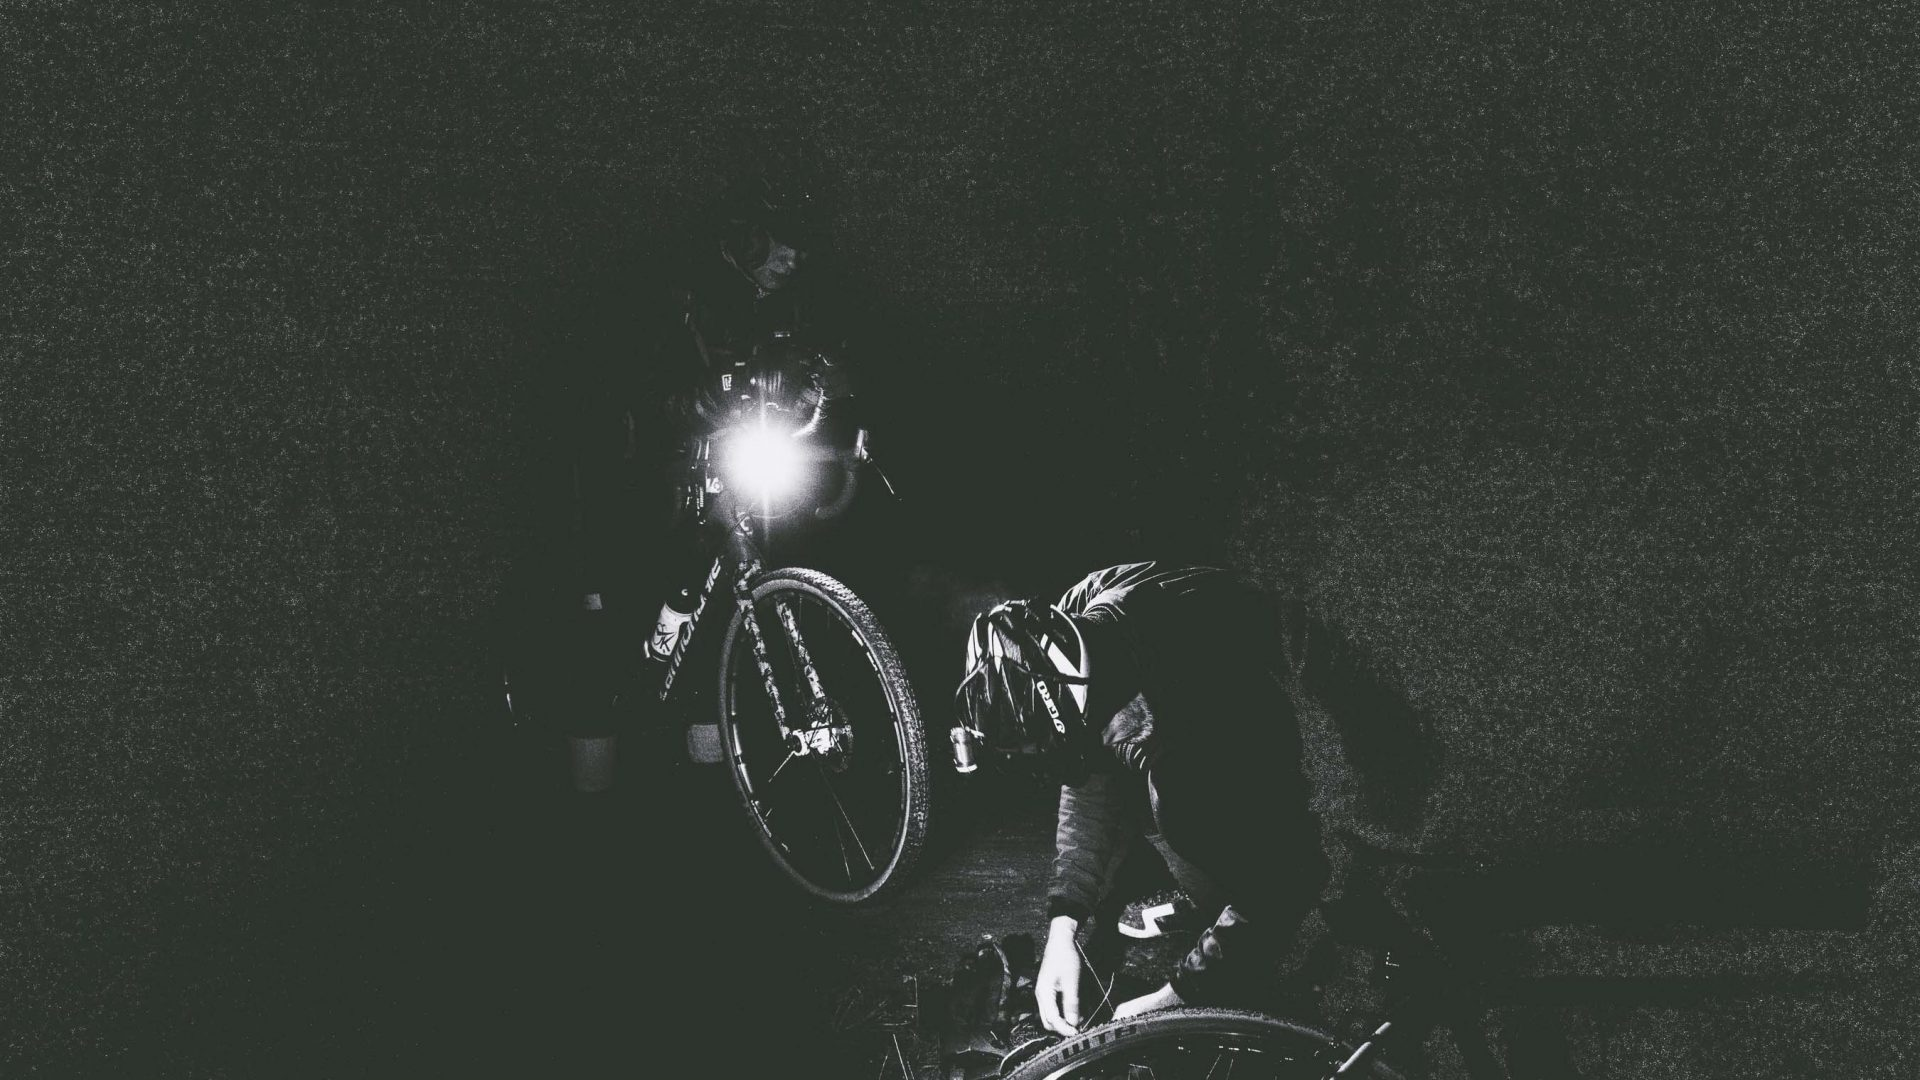 Two riders are barely visible in the dark.